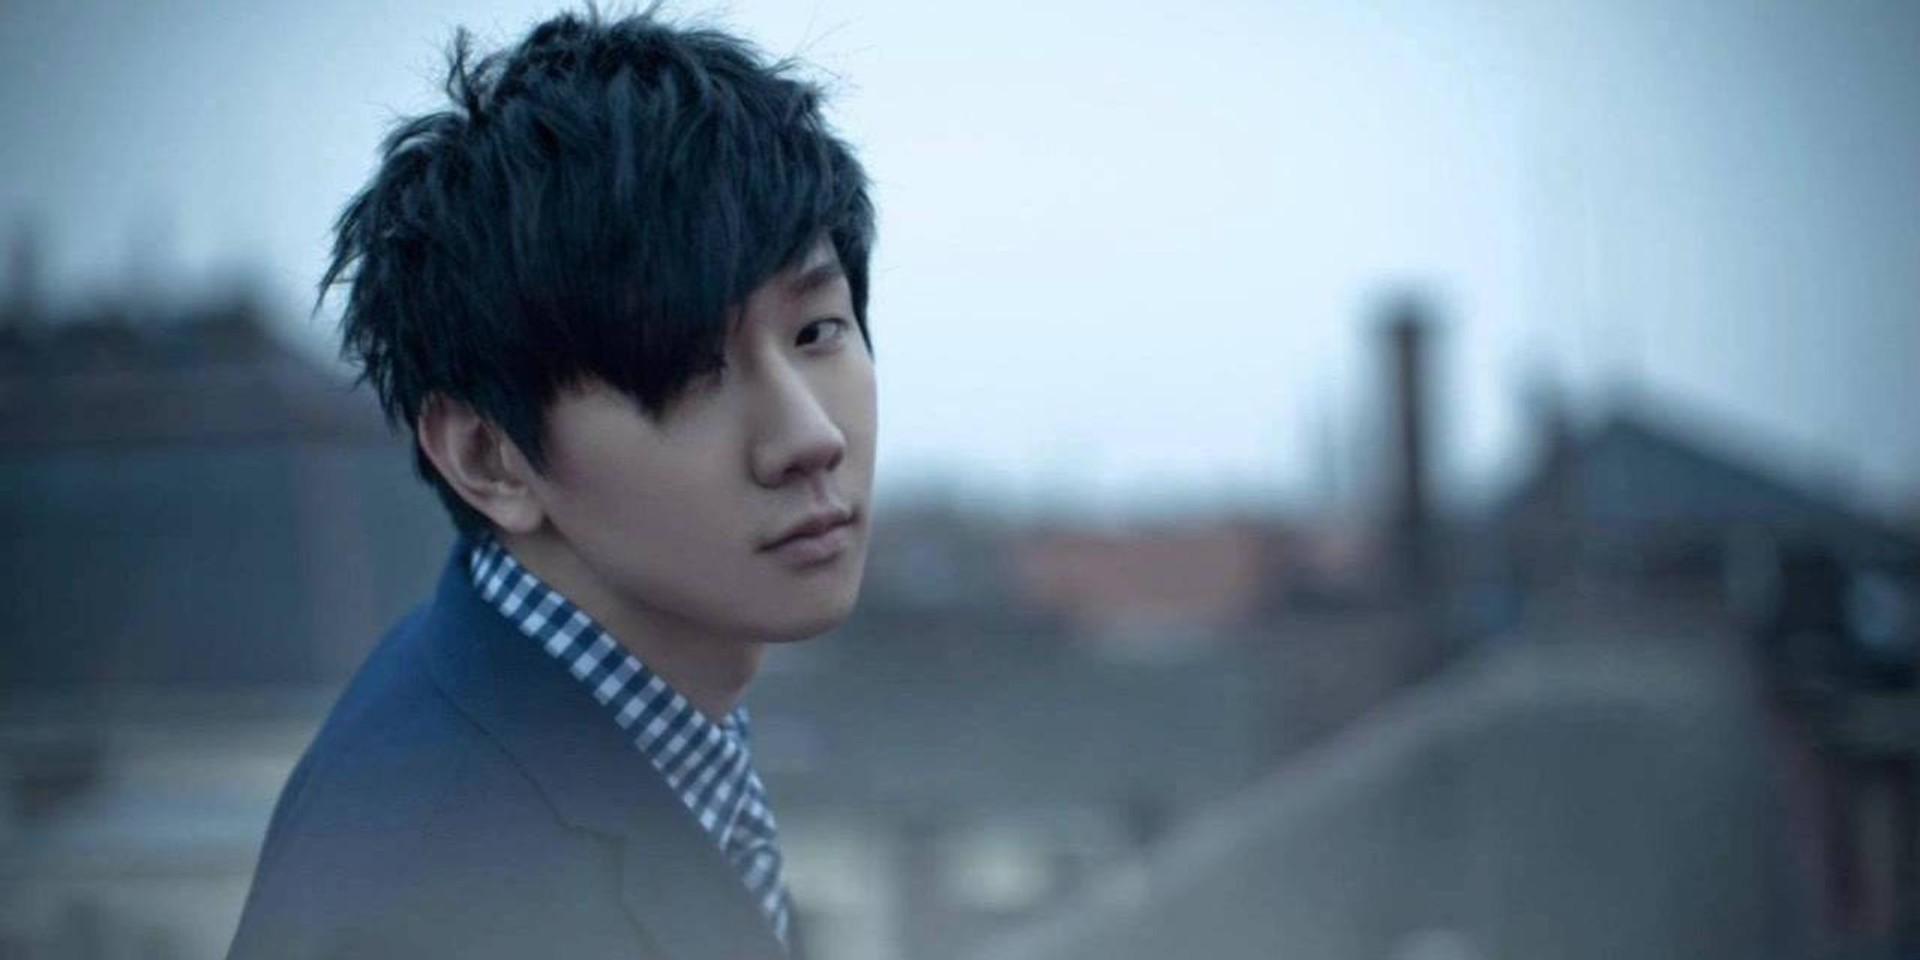 Ticketing and venue details for JJ Lin's Singapore shows released